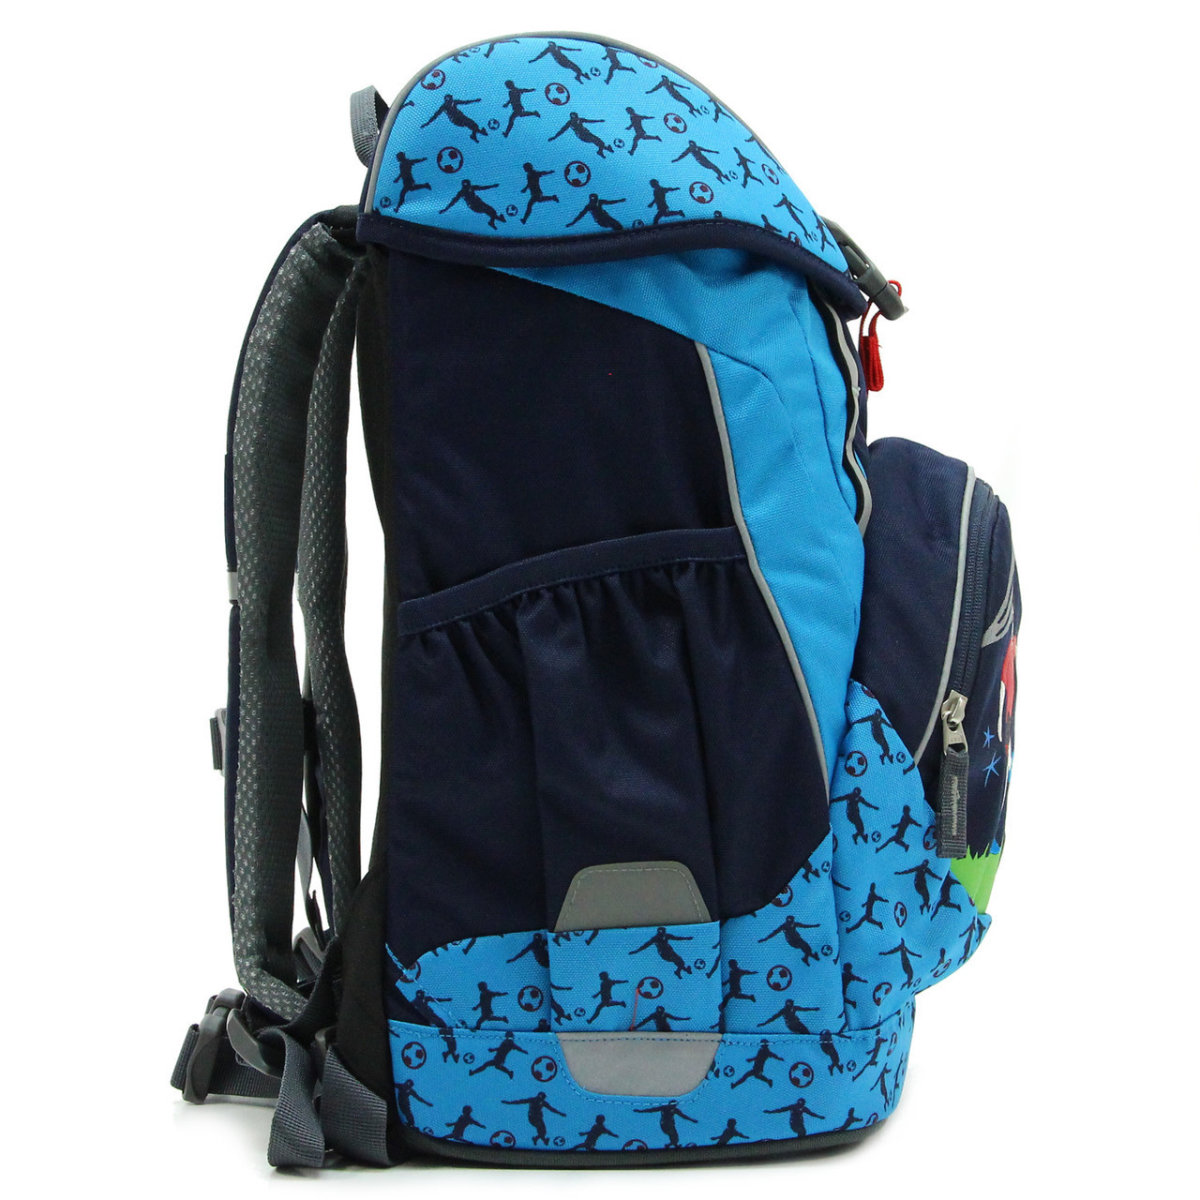 Набор сумок Deuter OneTwo Set - Sneaker Bag navy soccer 4 OneTwo Set - Hopper 3880017 3045 (SET)